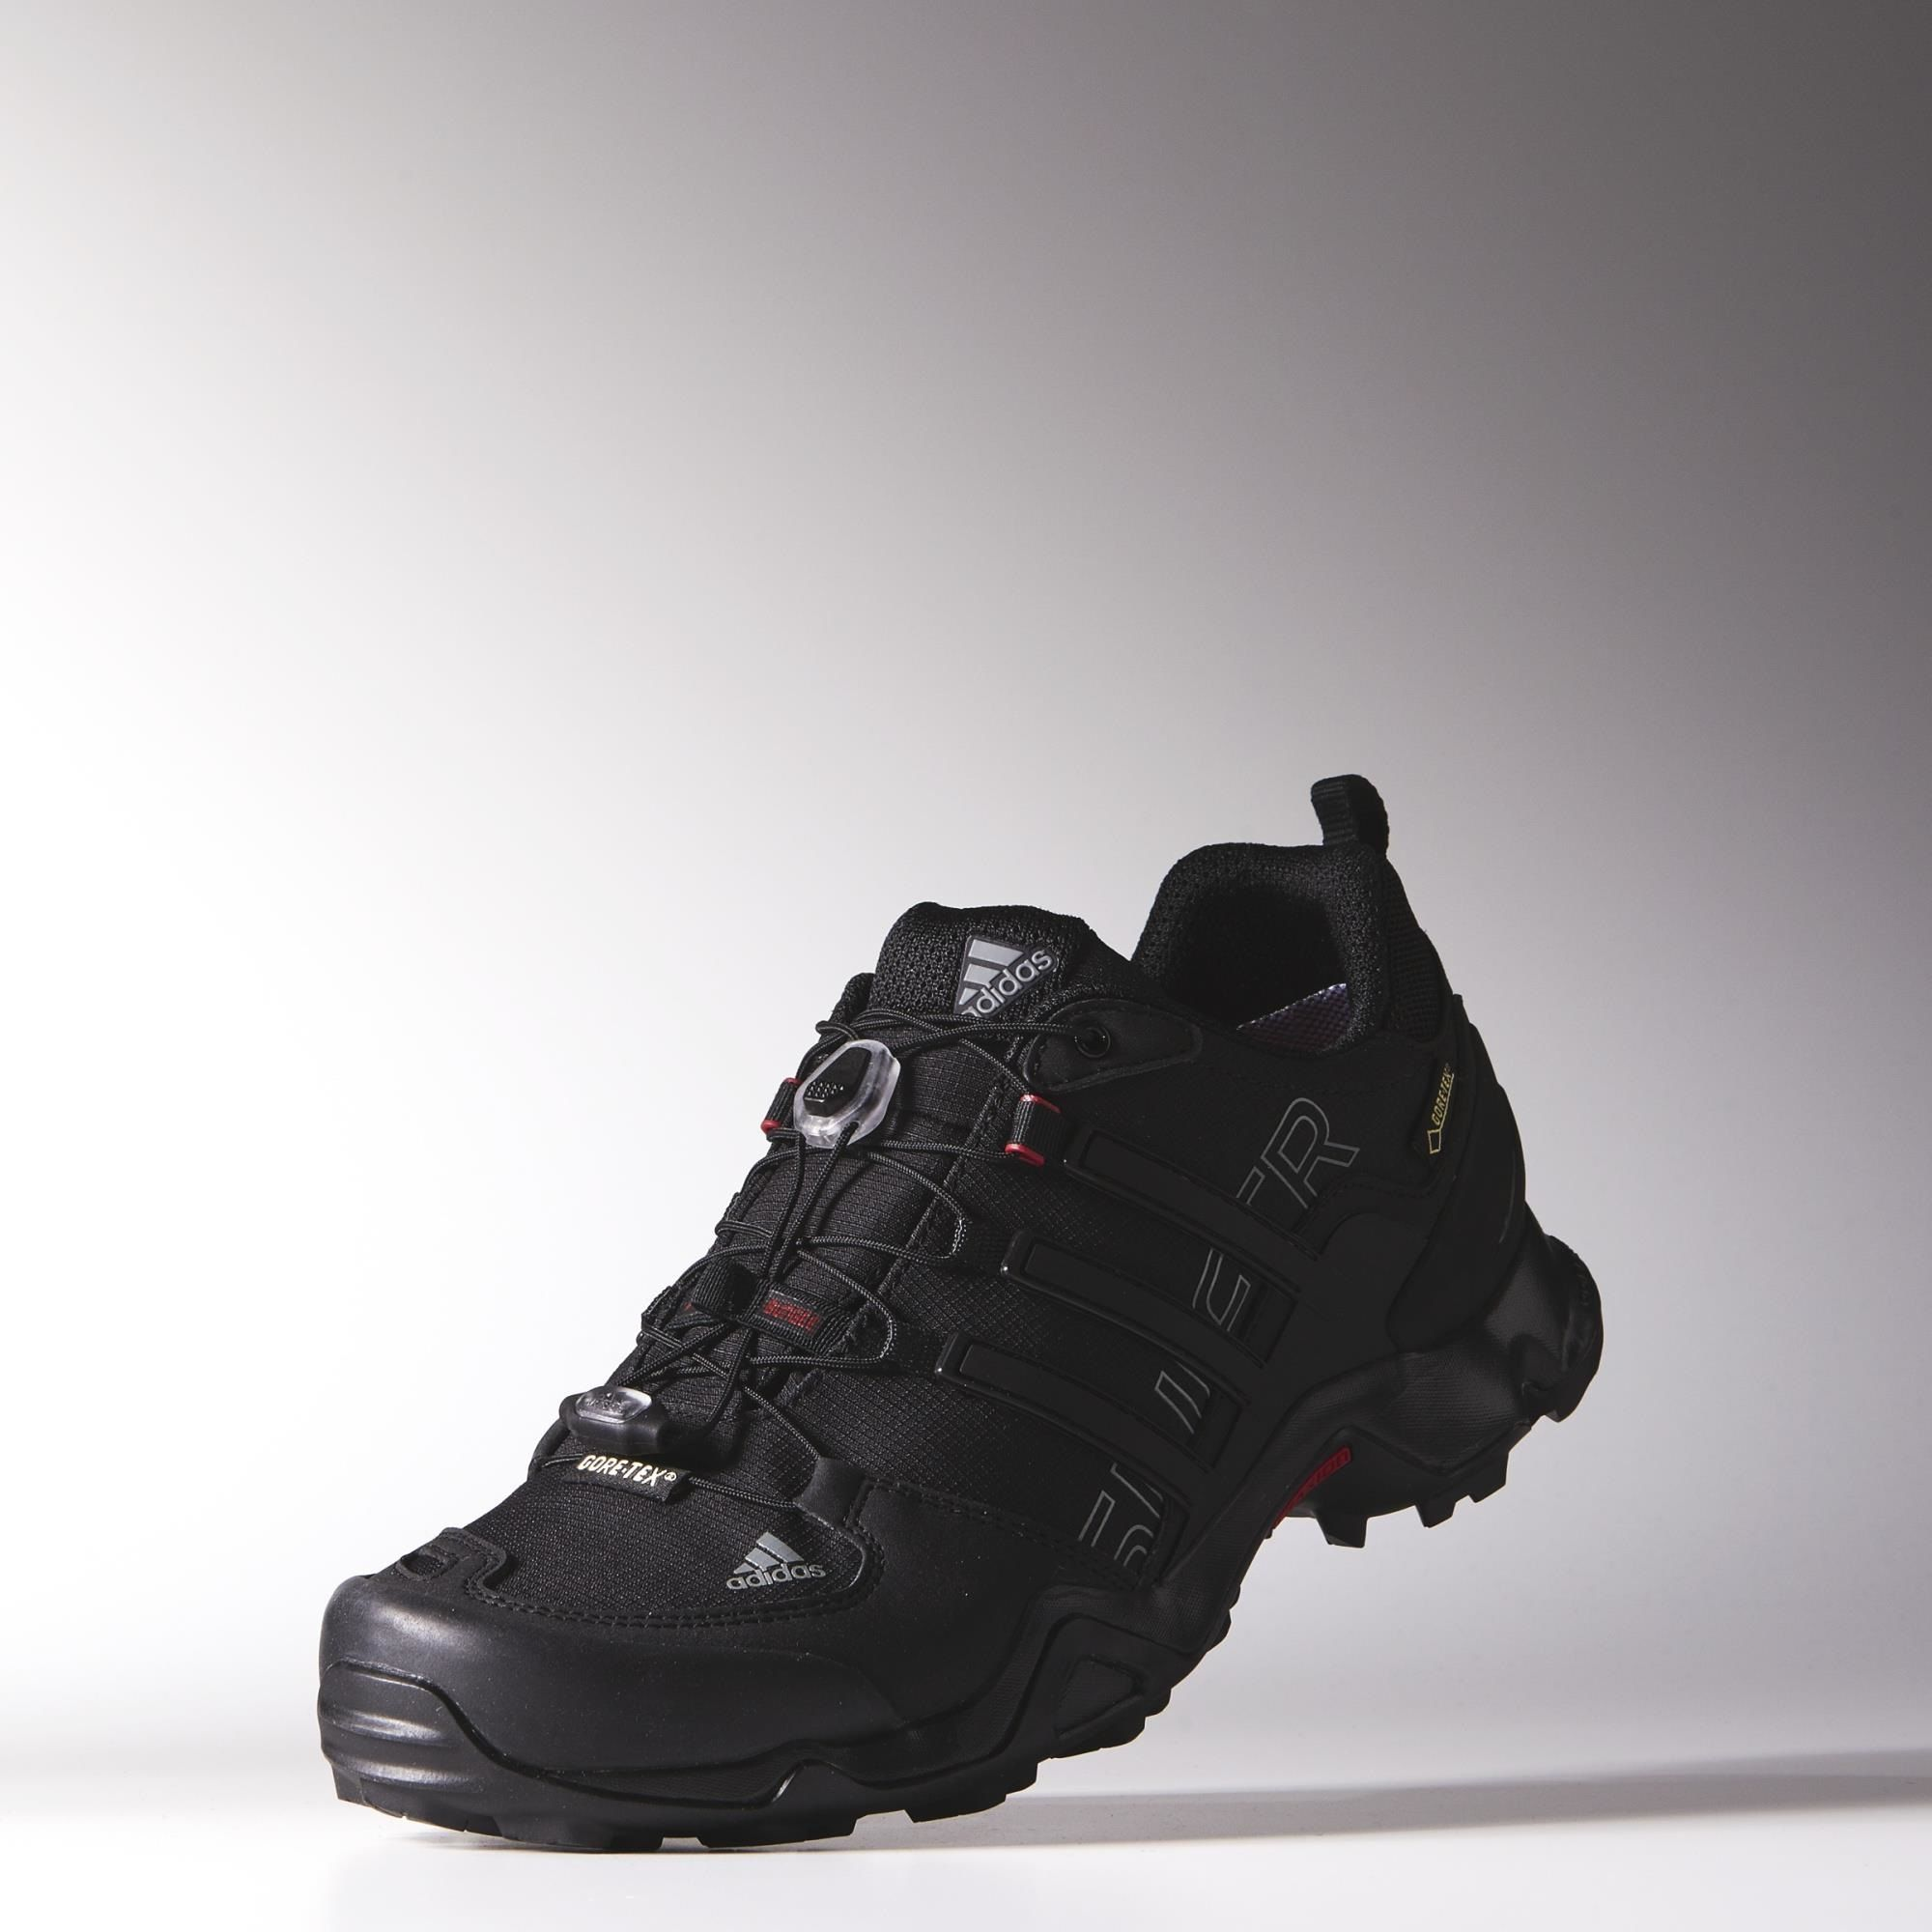 ad9bc2b56 adidas Terrex Swift R GTX Shoes - Black